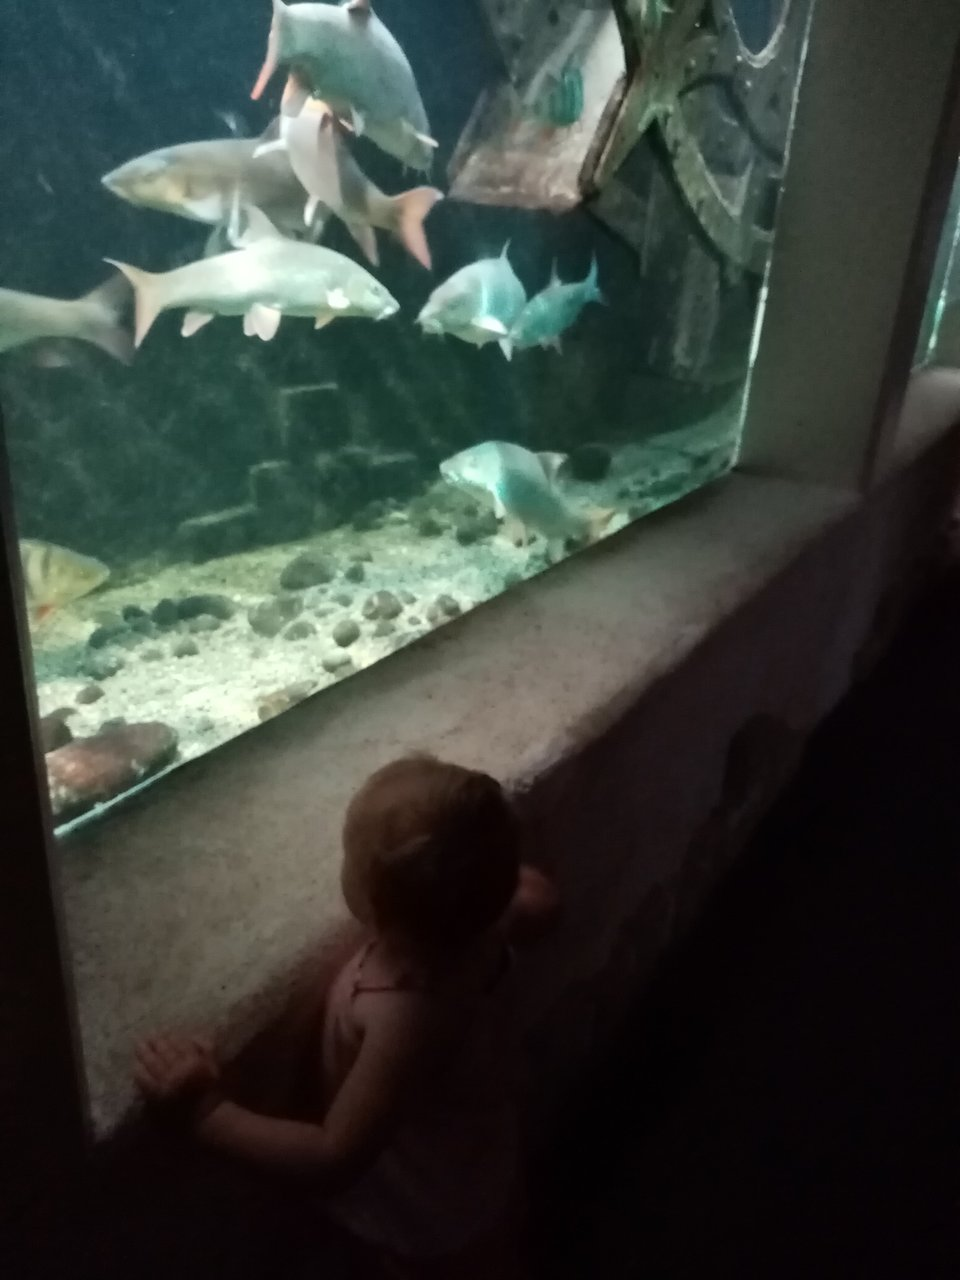 Plus Grand Aquarium De France : grand, aquarium, france, Grand, Aquarium, Touraine, (Lussault-sur-Loire), Qu'il, Savoir, Votre, Visite, Tripadvisor